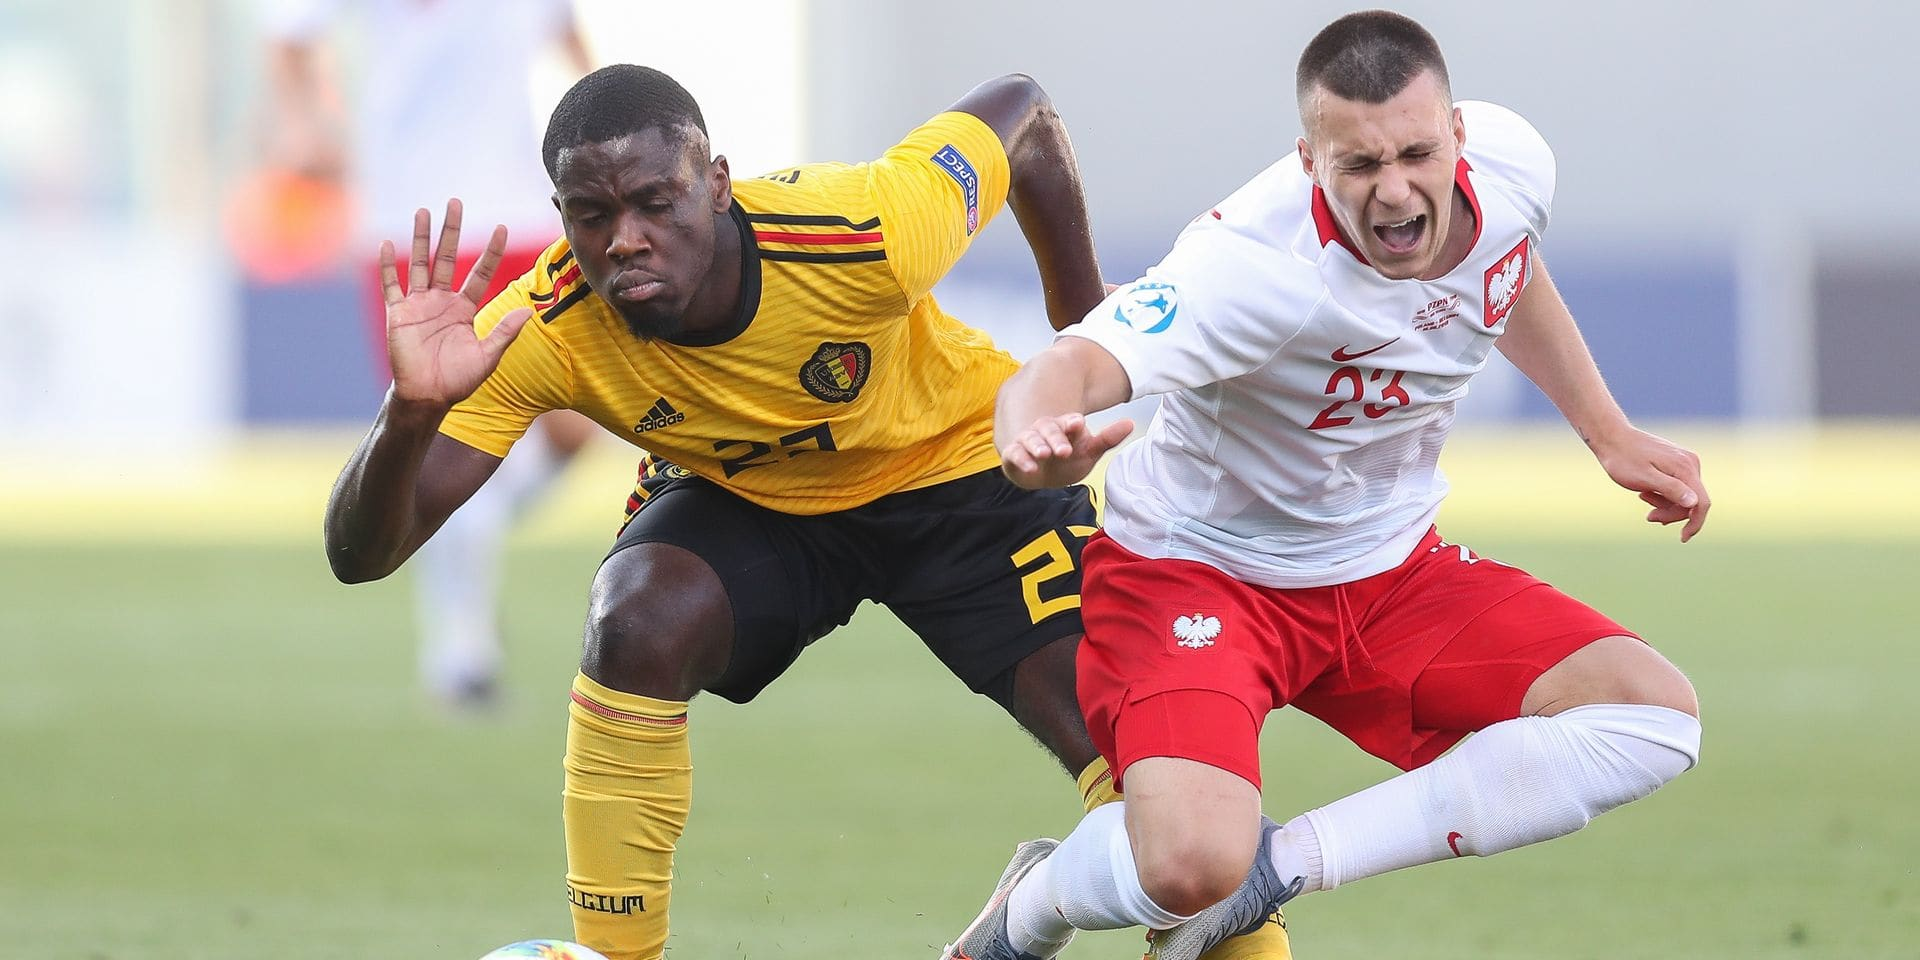 Belgium's Orel Mangala and Poland's Konrad Michalak fight for the ball during a game between the U21 youth team of the Belgian national soccer team Red Devils and Poland, Sunday 16 June 2019, match 1/3 in group A at the 2019 European championships under 21 in Reggio, Italy. BELGA PHOTO BRUNO FAHY